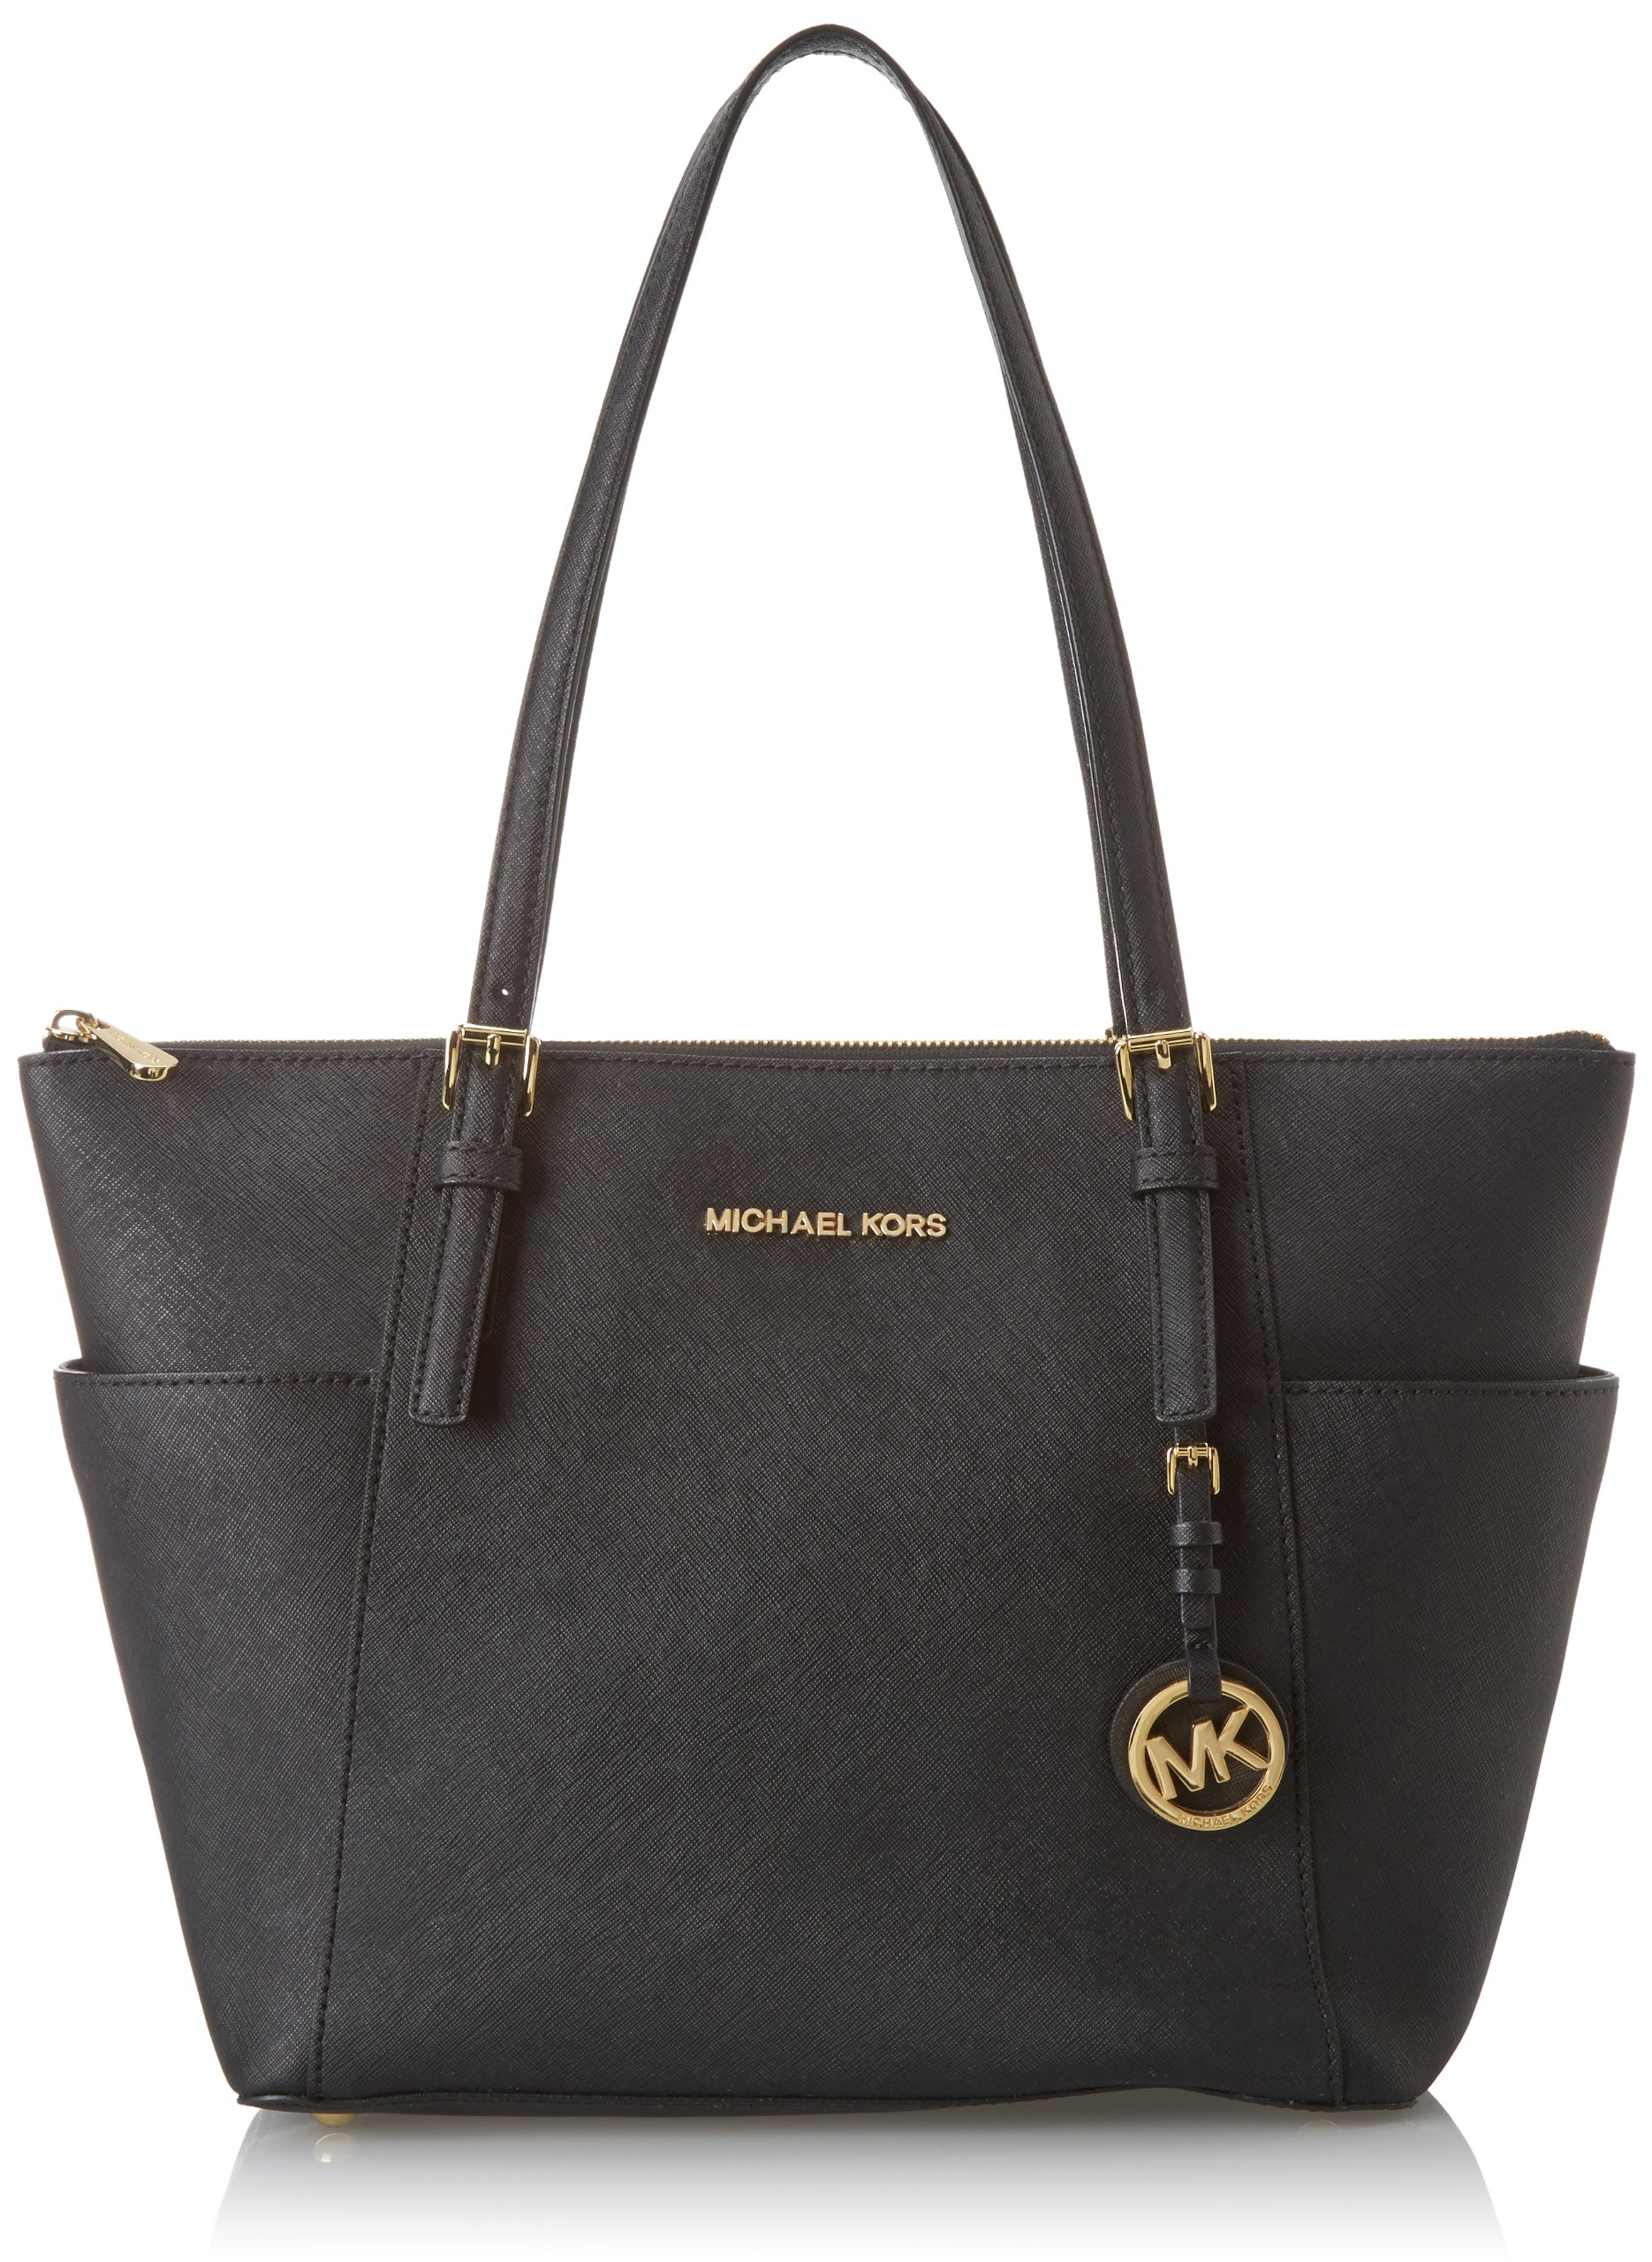 4cdd2421e8bb86 Michael Kors Womens Jet Set Item East West Top Zip Tote, Black (Black), One  Size: Amazon.co.uk: Shoes & Bags